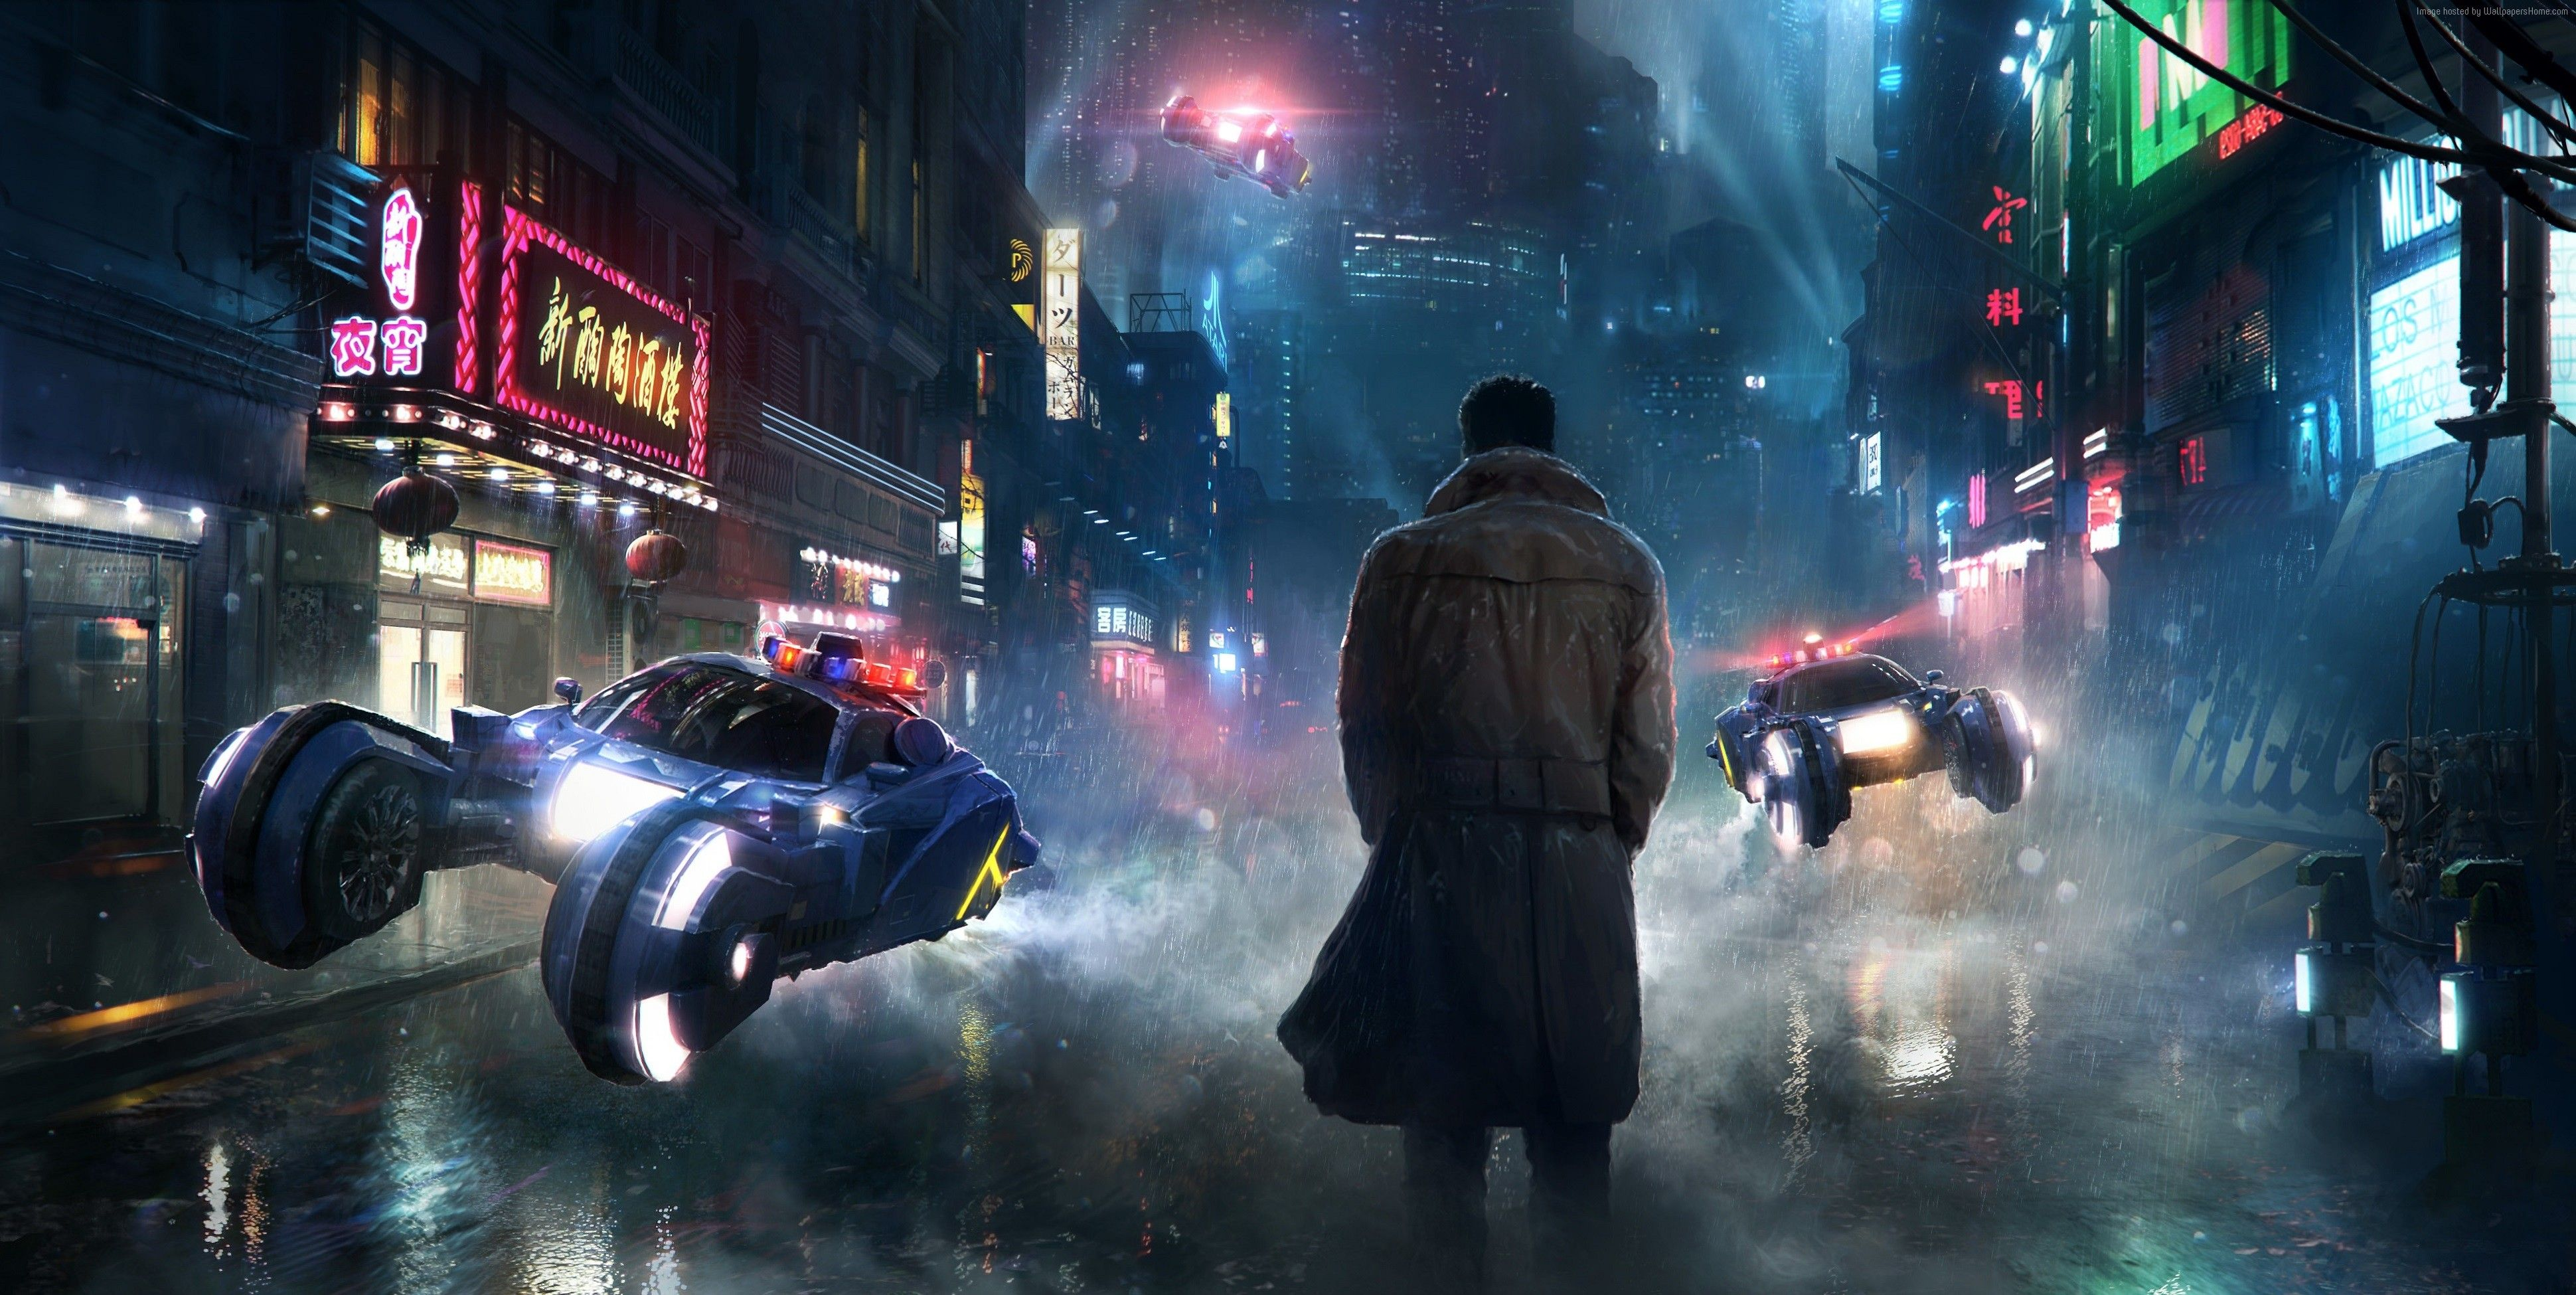 Blade Runner Wallpapers Top Free Blade Runner Backgrounds